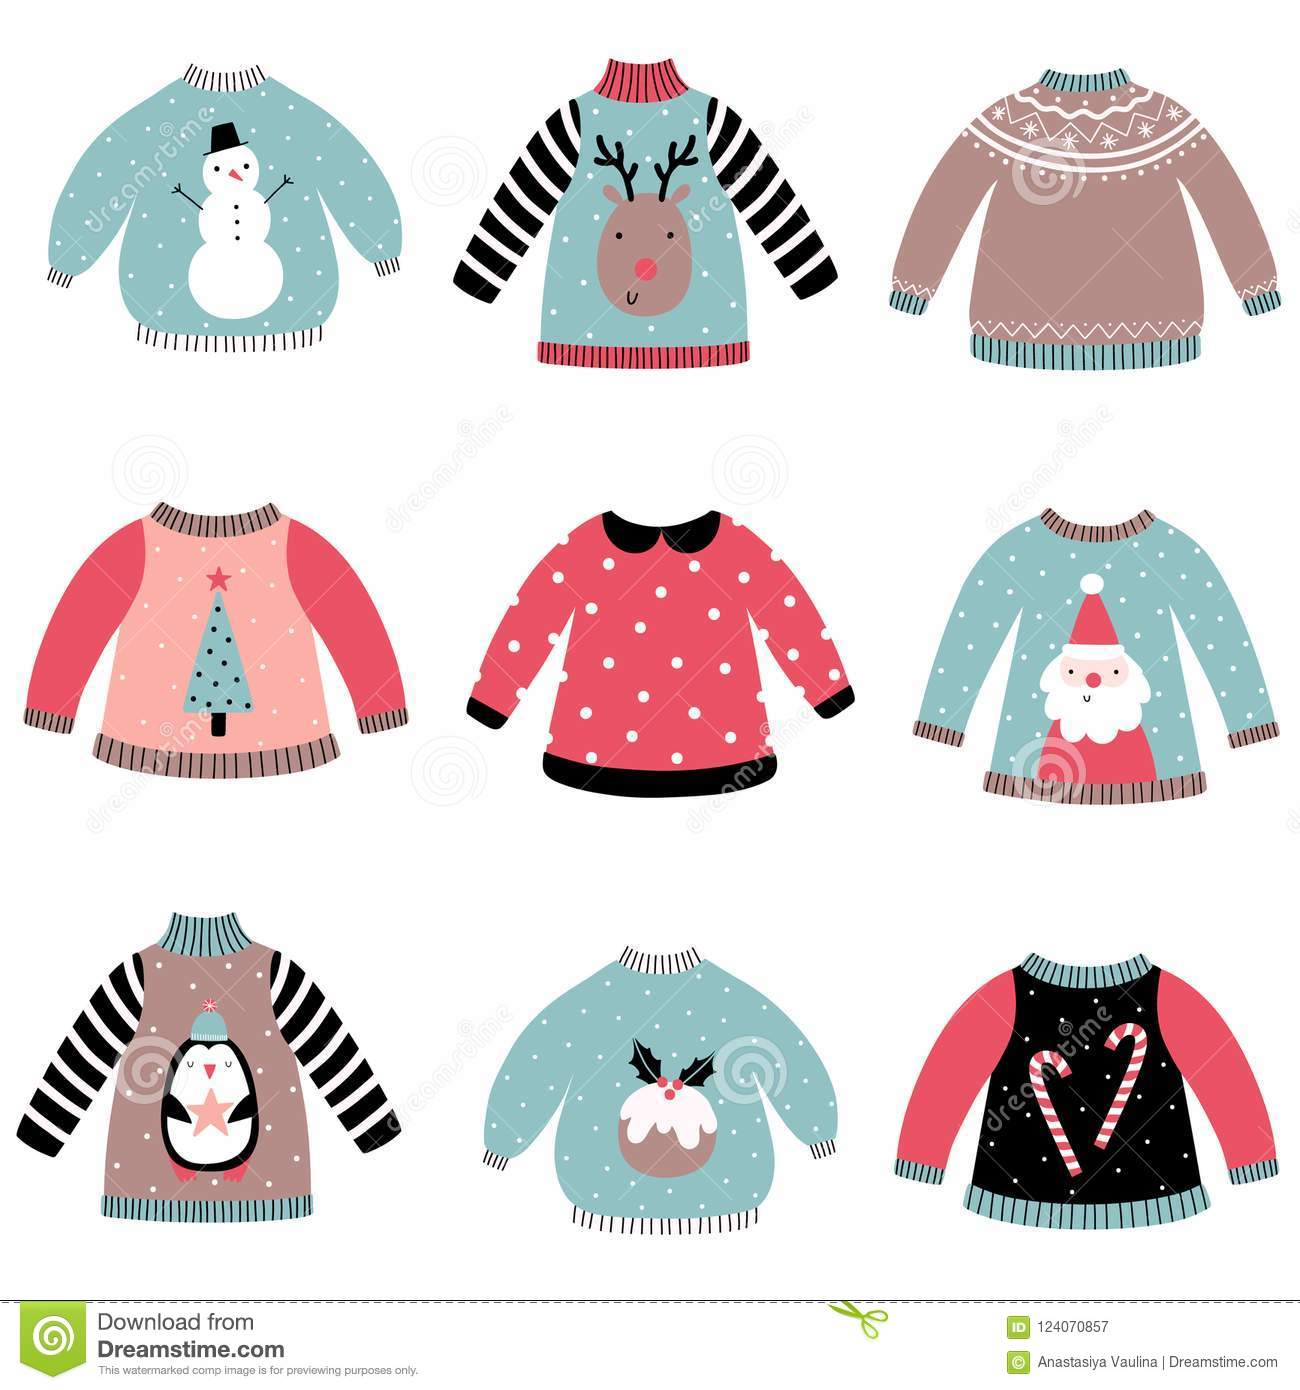 e92a4d40adf8 Cute Christmas Sweaters Set. Stock Illustration - Illustration of ...